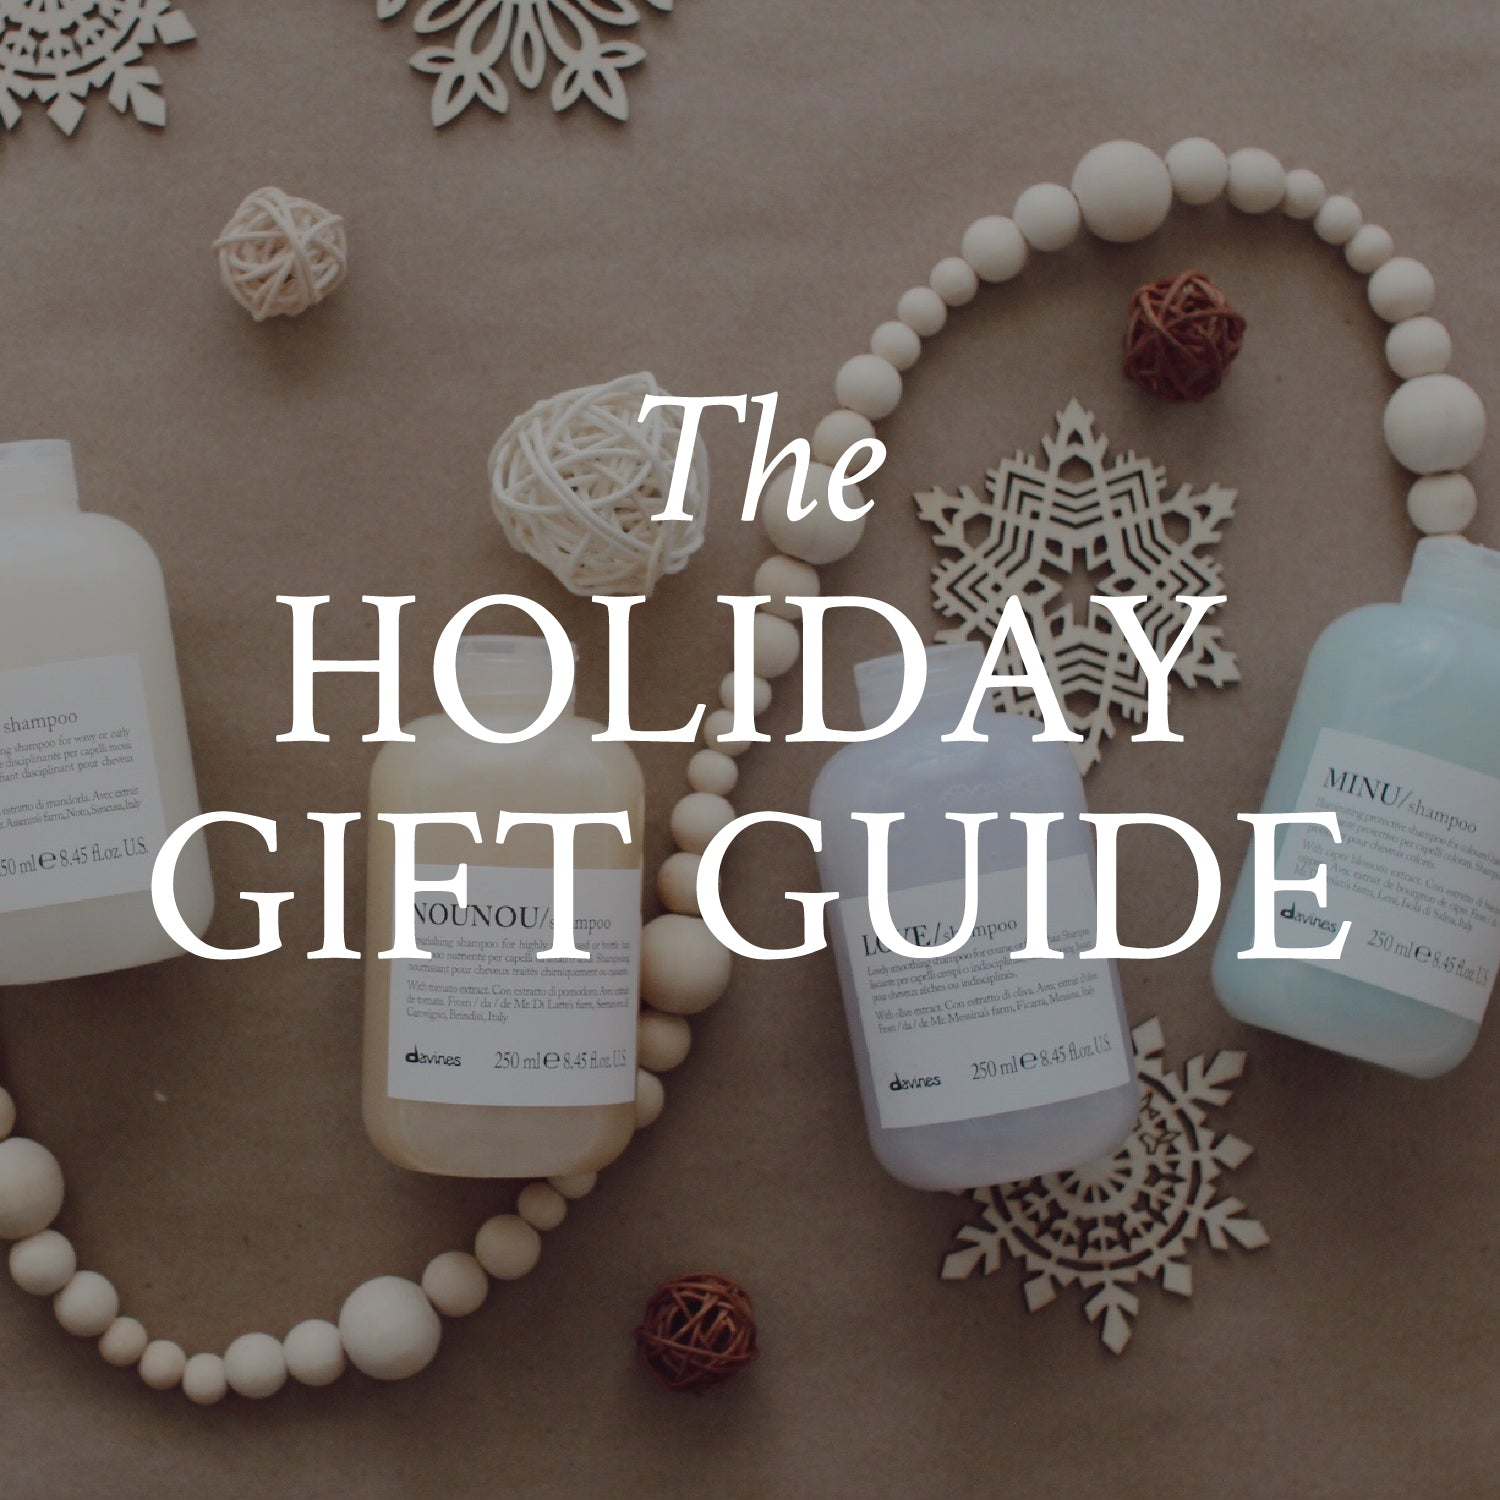 The Davines holiday gift guide